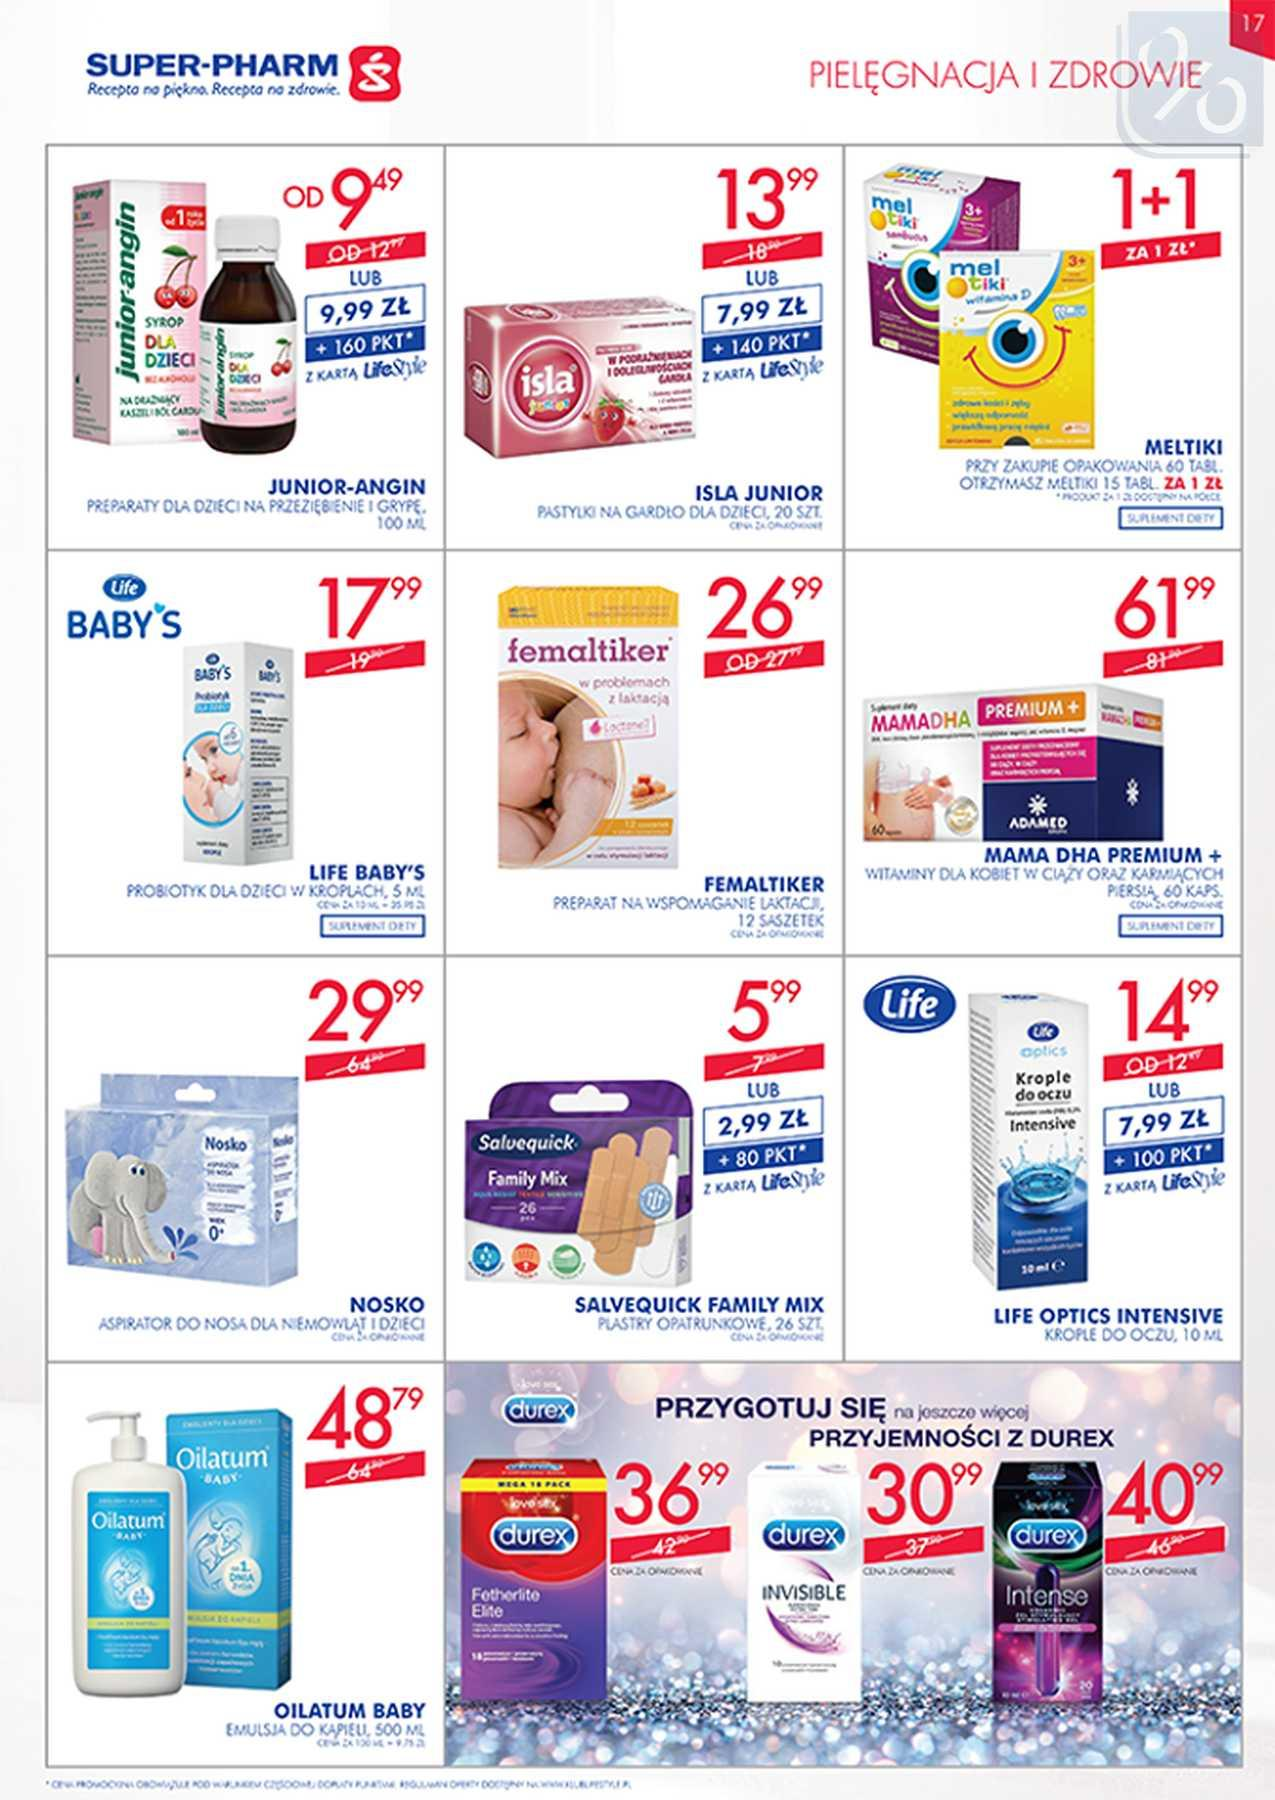 Gazetka promocyjna Superpharm do 23/01/2019 str.17